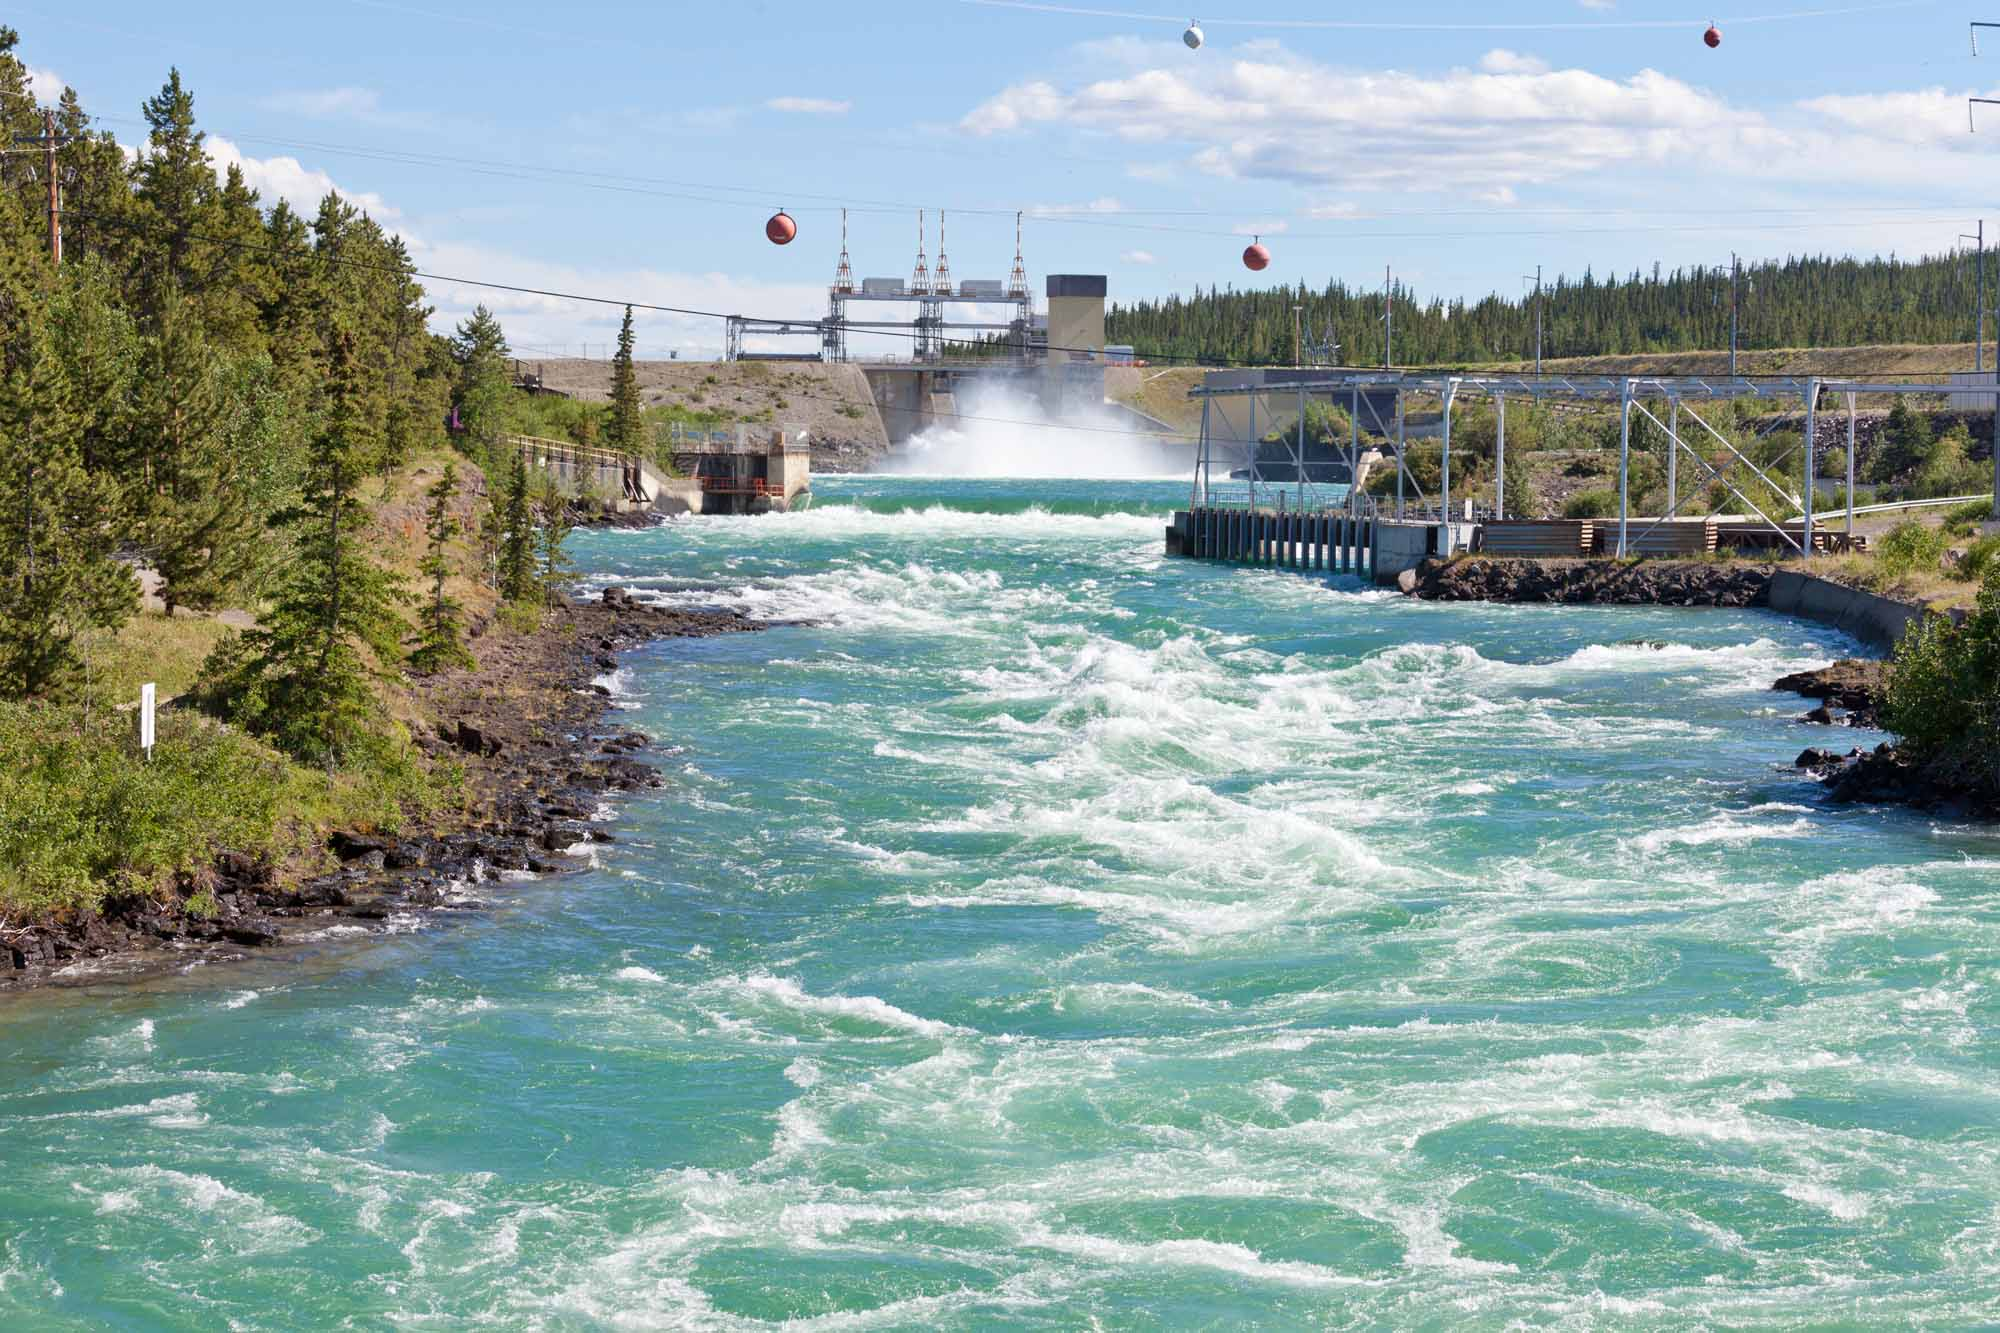 Whitehorse Hydro Power Dam Spillway